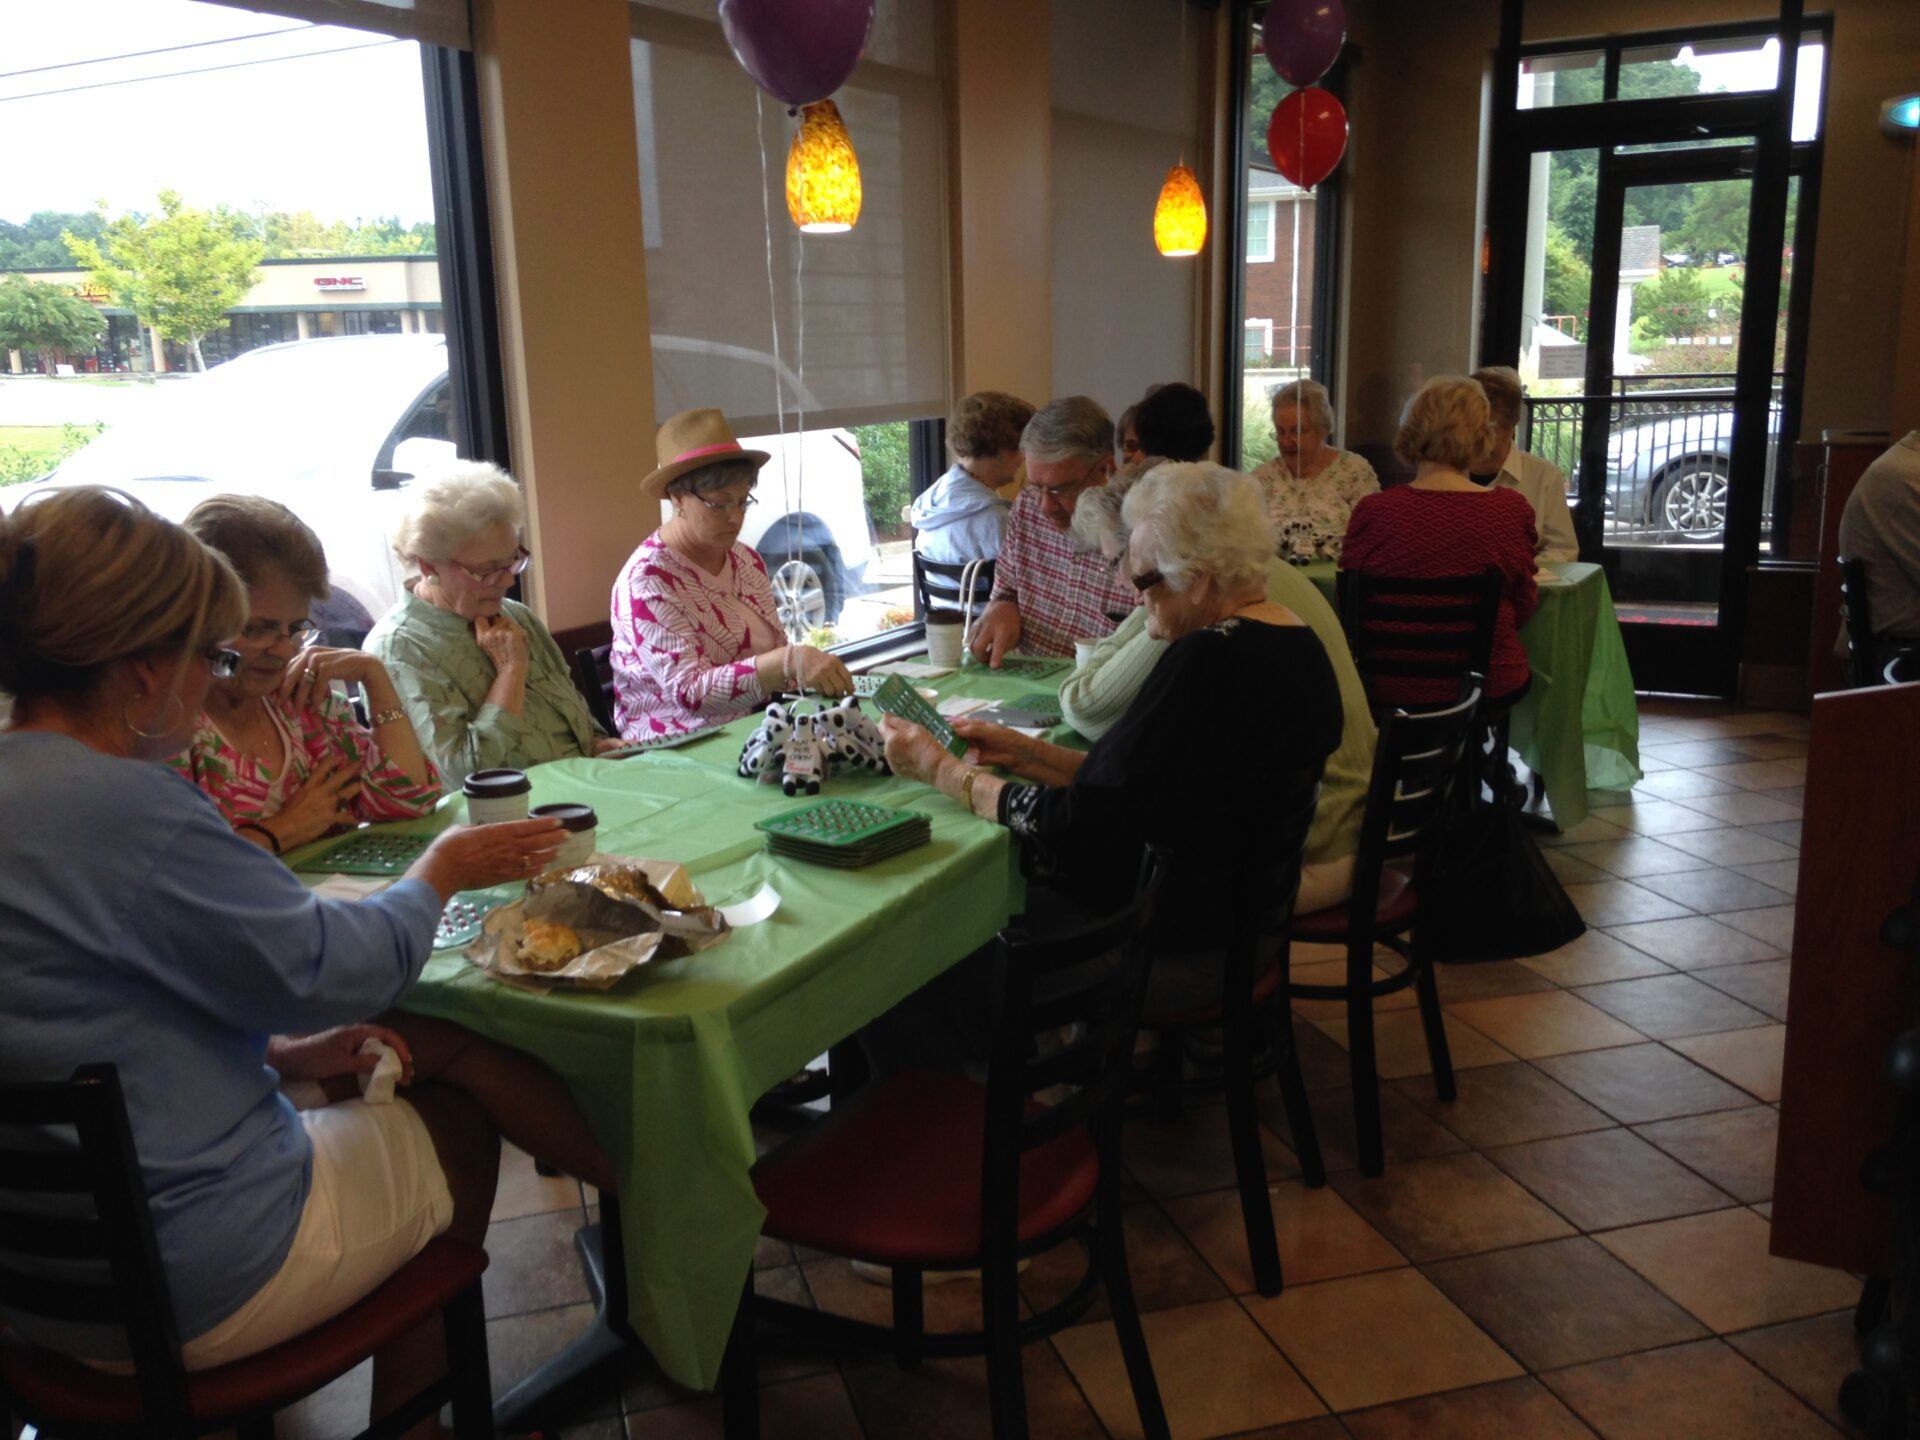 Chick-fil-A (misspelled: Chickfilla) Senior Discount - Ongoing: FREE coffee or drink for those who are 50+. Valid everyday. Each location is independently operated so call ahead.